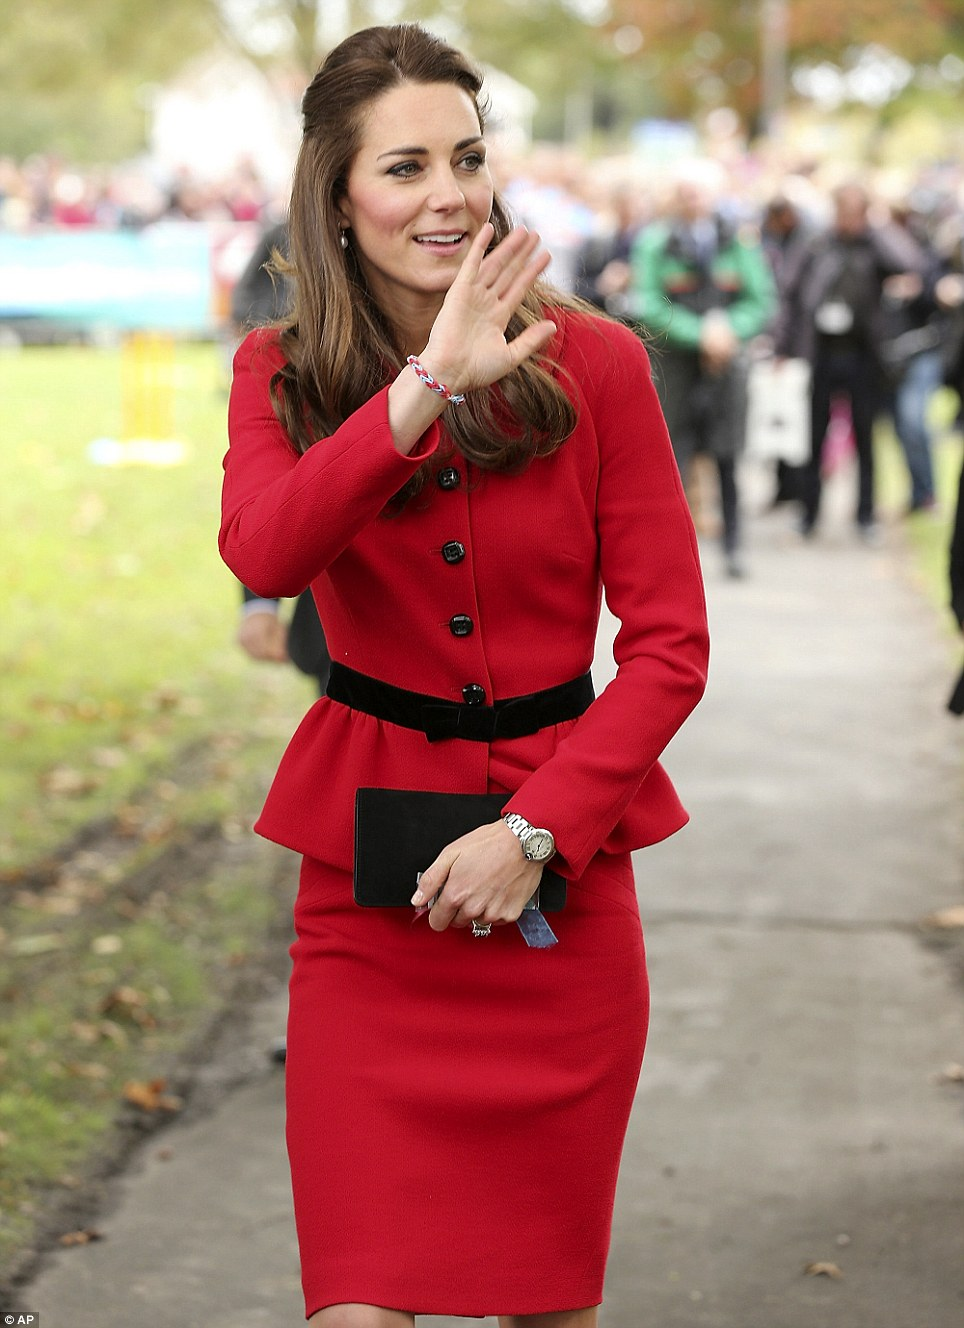 The down-to-earth Duchess wore a colourful loom bracelet that was given to her during the day